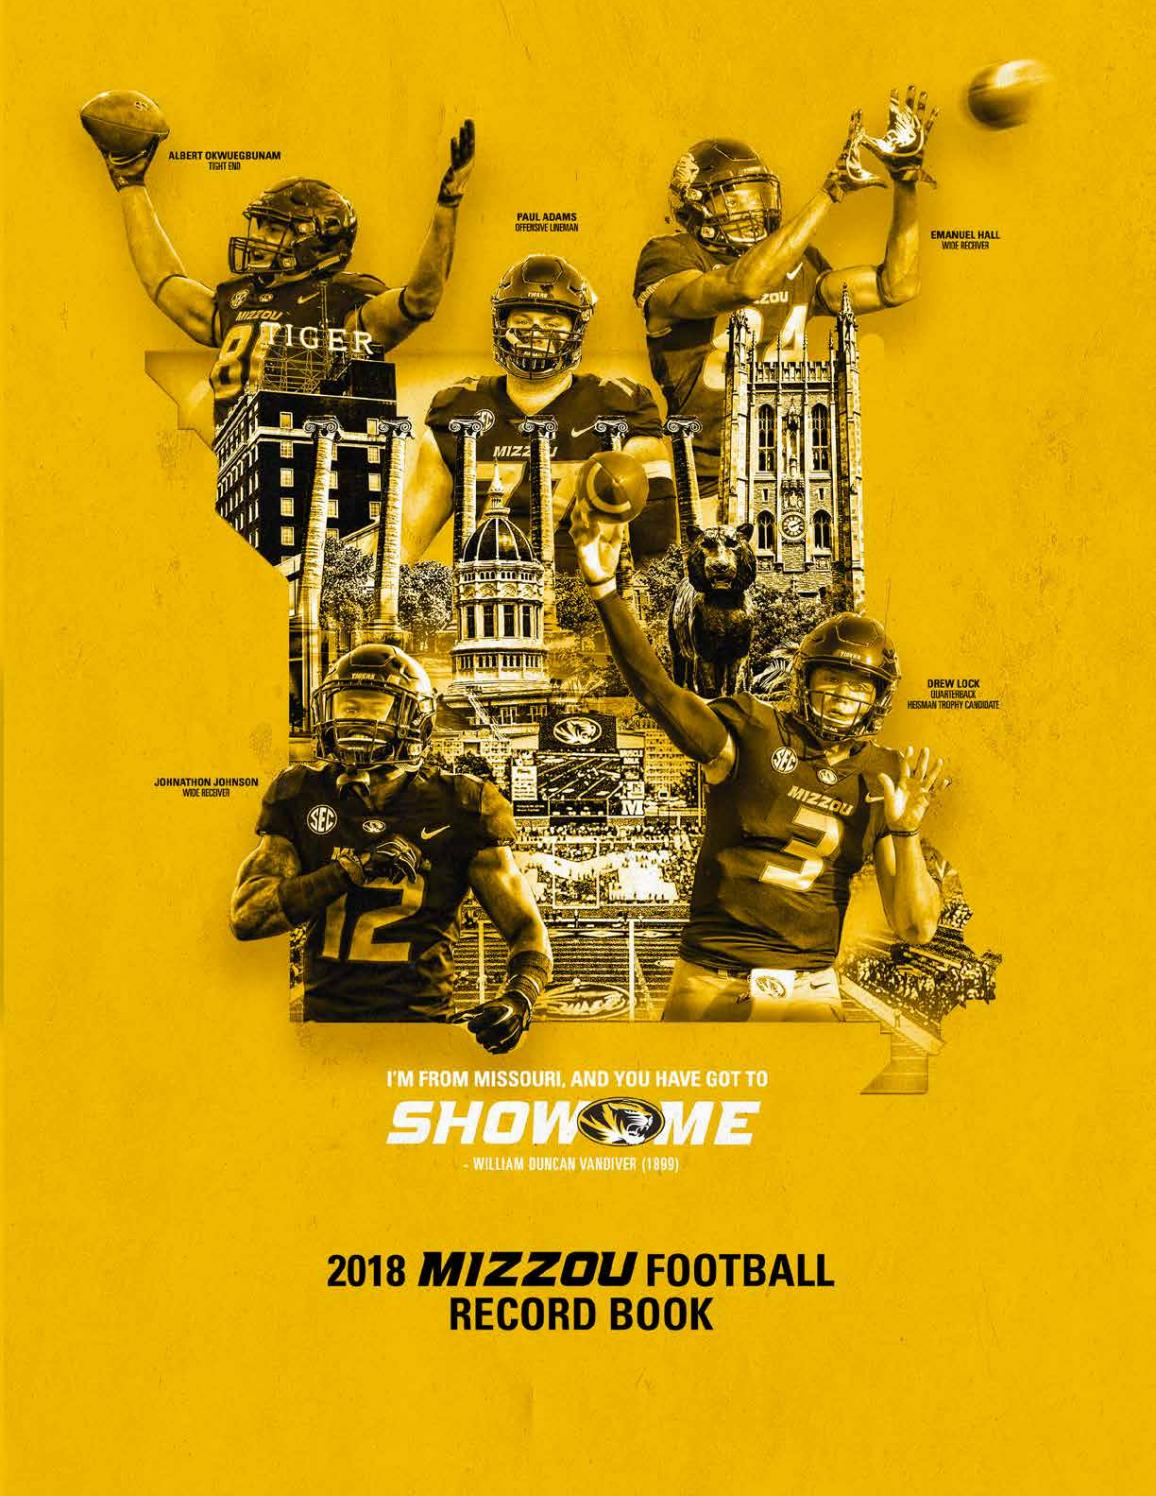 307d2aa7c373 2018 missouri football media guide by Mexico Sports Collectibles - issuu